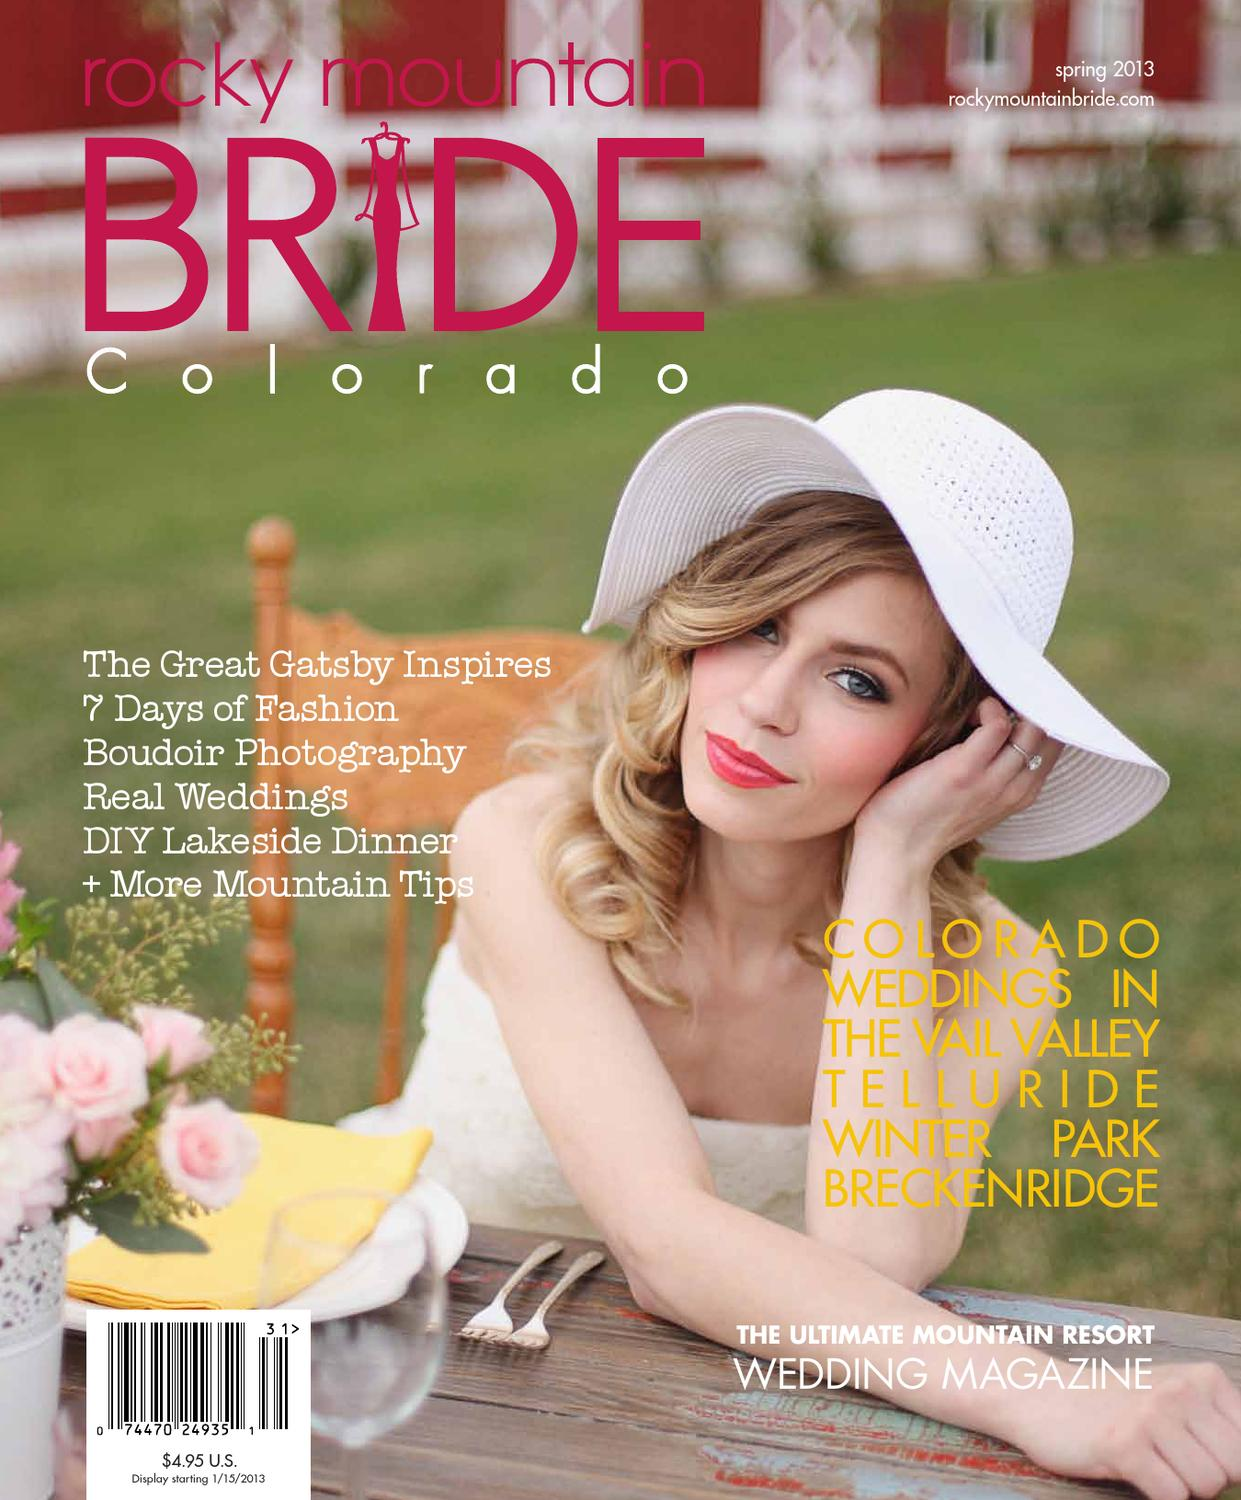 3938a4e3789e Spring 2013 - Rocky Mountain Bride Colorado. Colorado Rocky Mountain  Weddings